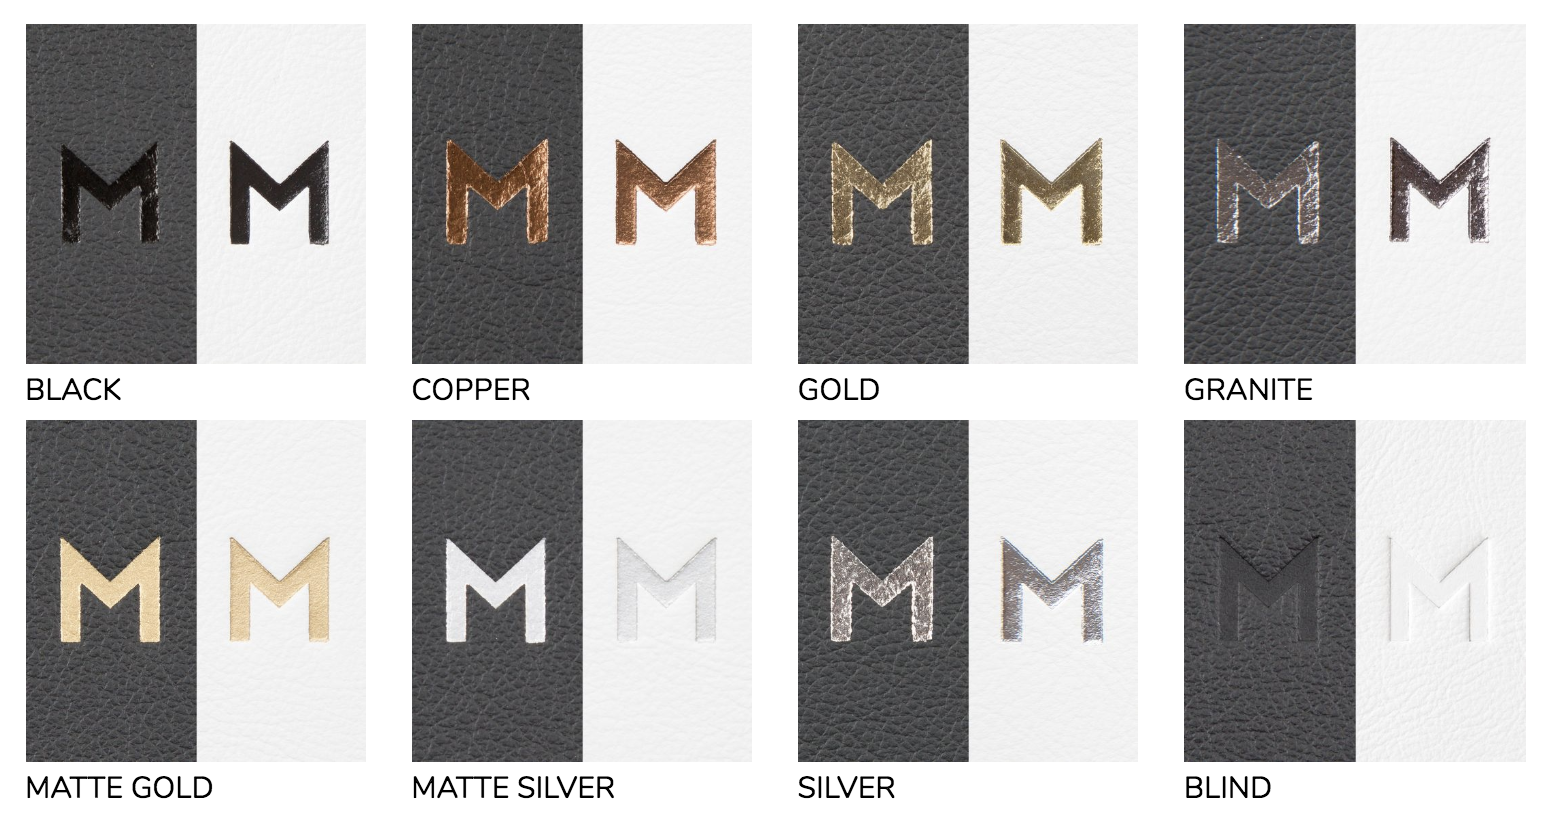 Debossing:  Plain or with foil. Black, copper, gold, granite, matte gold, matte silver, silver, blind (plain). Up to 3 lines of text, front and center.  Velvet and Distressed Leather are blind only (no foil).